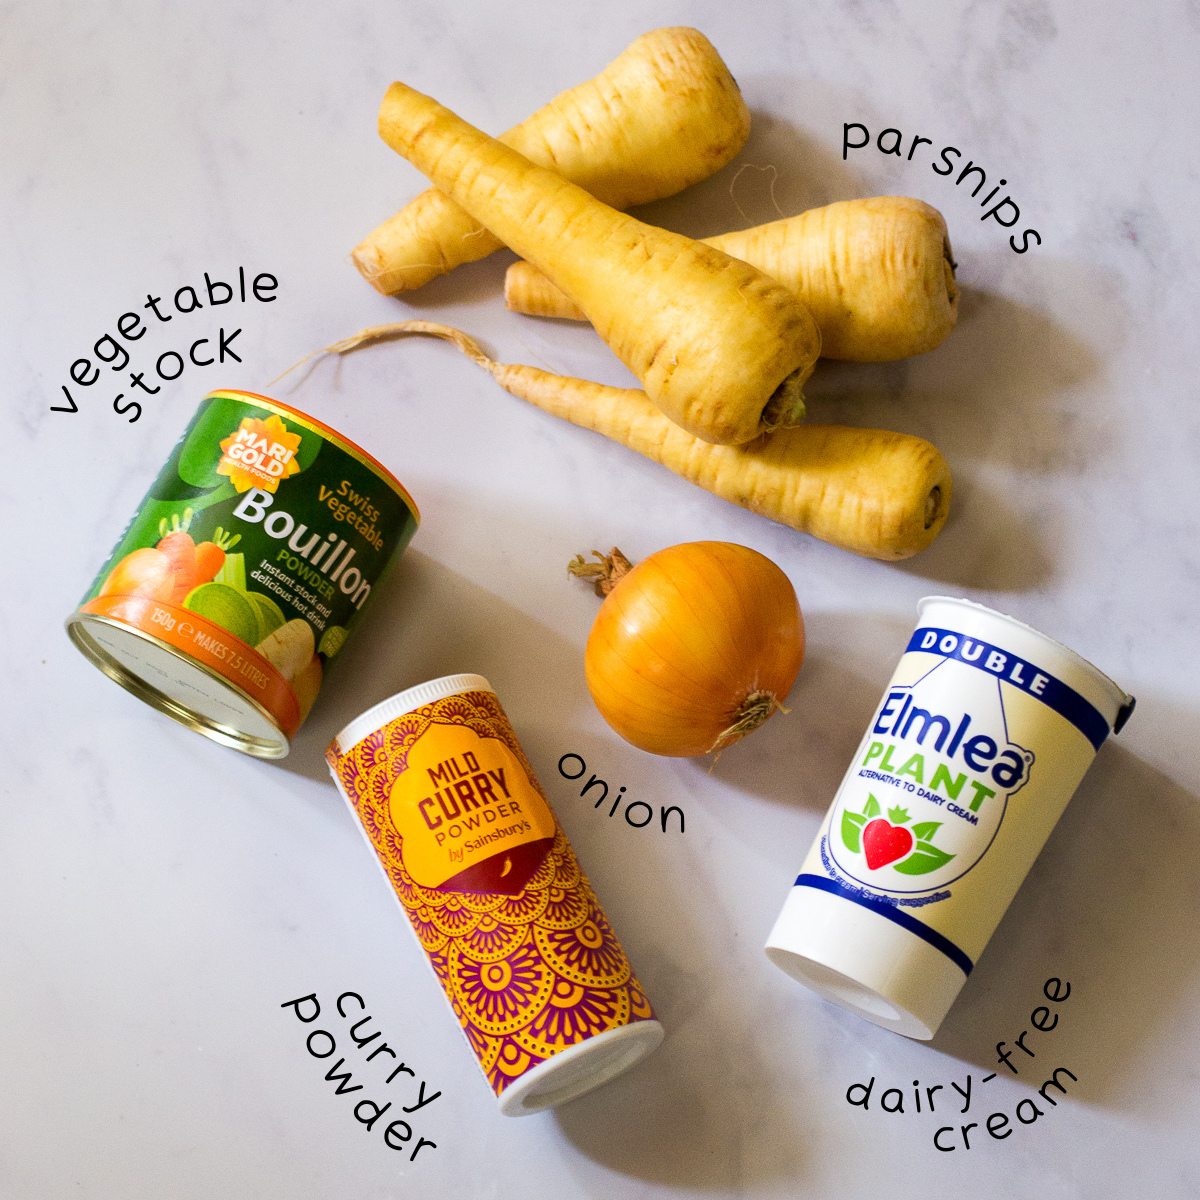 Ingredients for curried parsnip soup